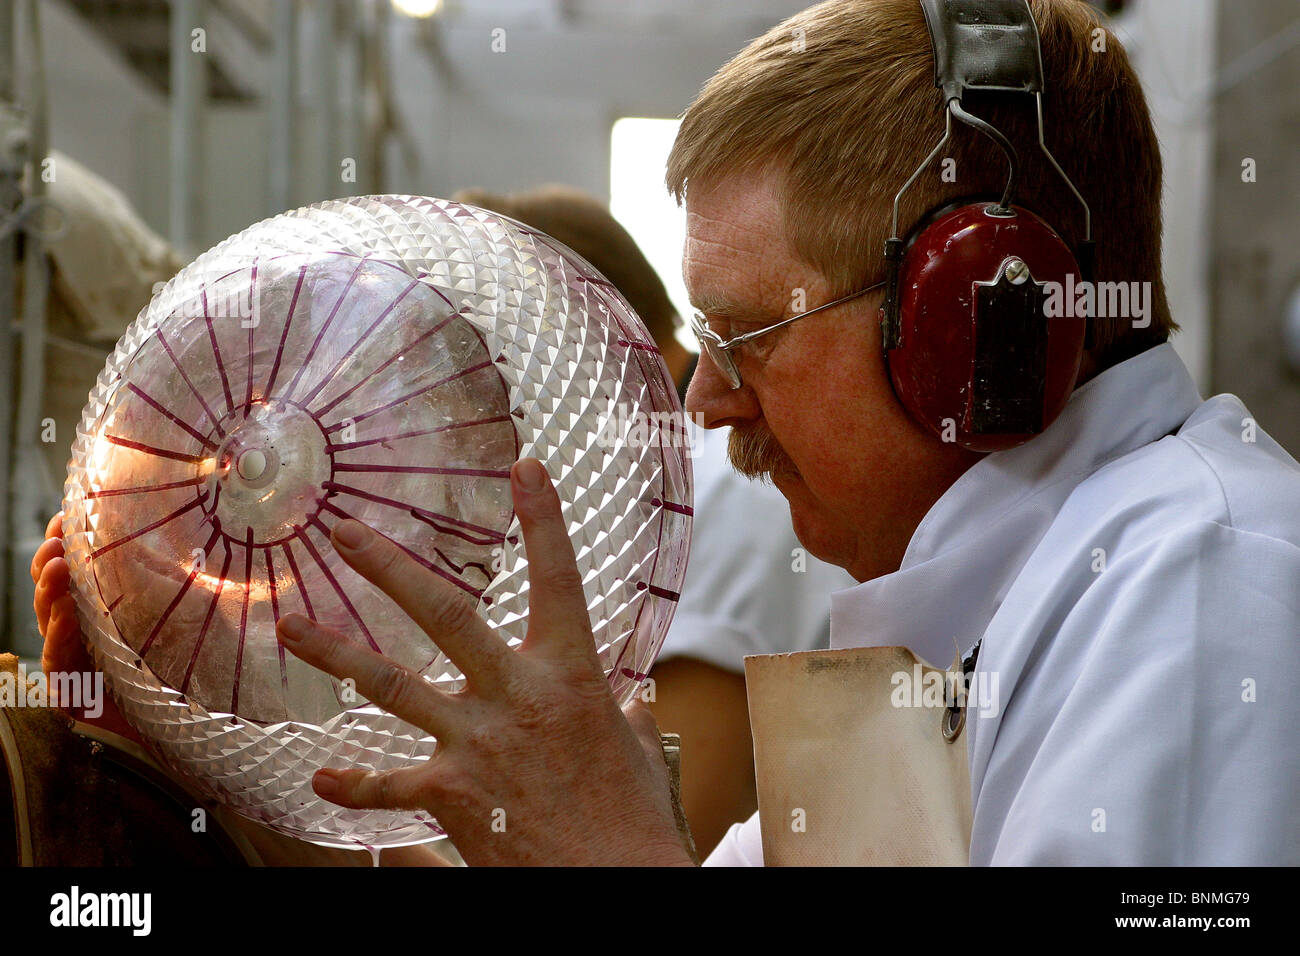 Ireland, Waterford, Waterford Crystal Factory Visitor's Centre, cutting decoration into bowl - Stock Image